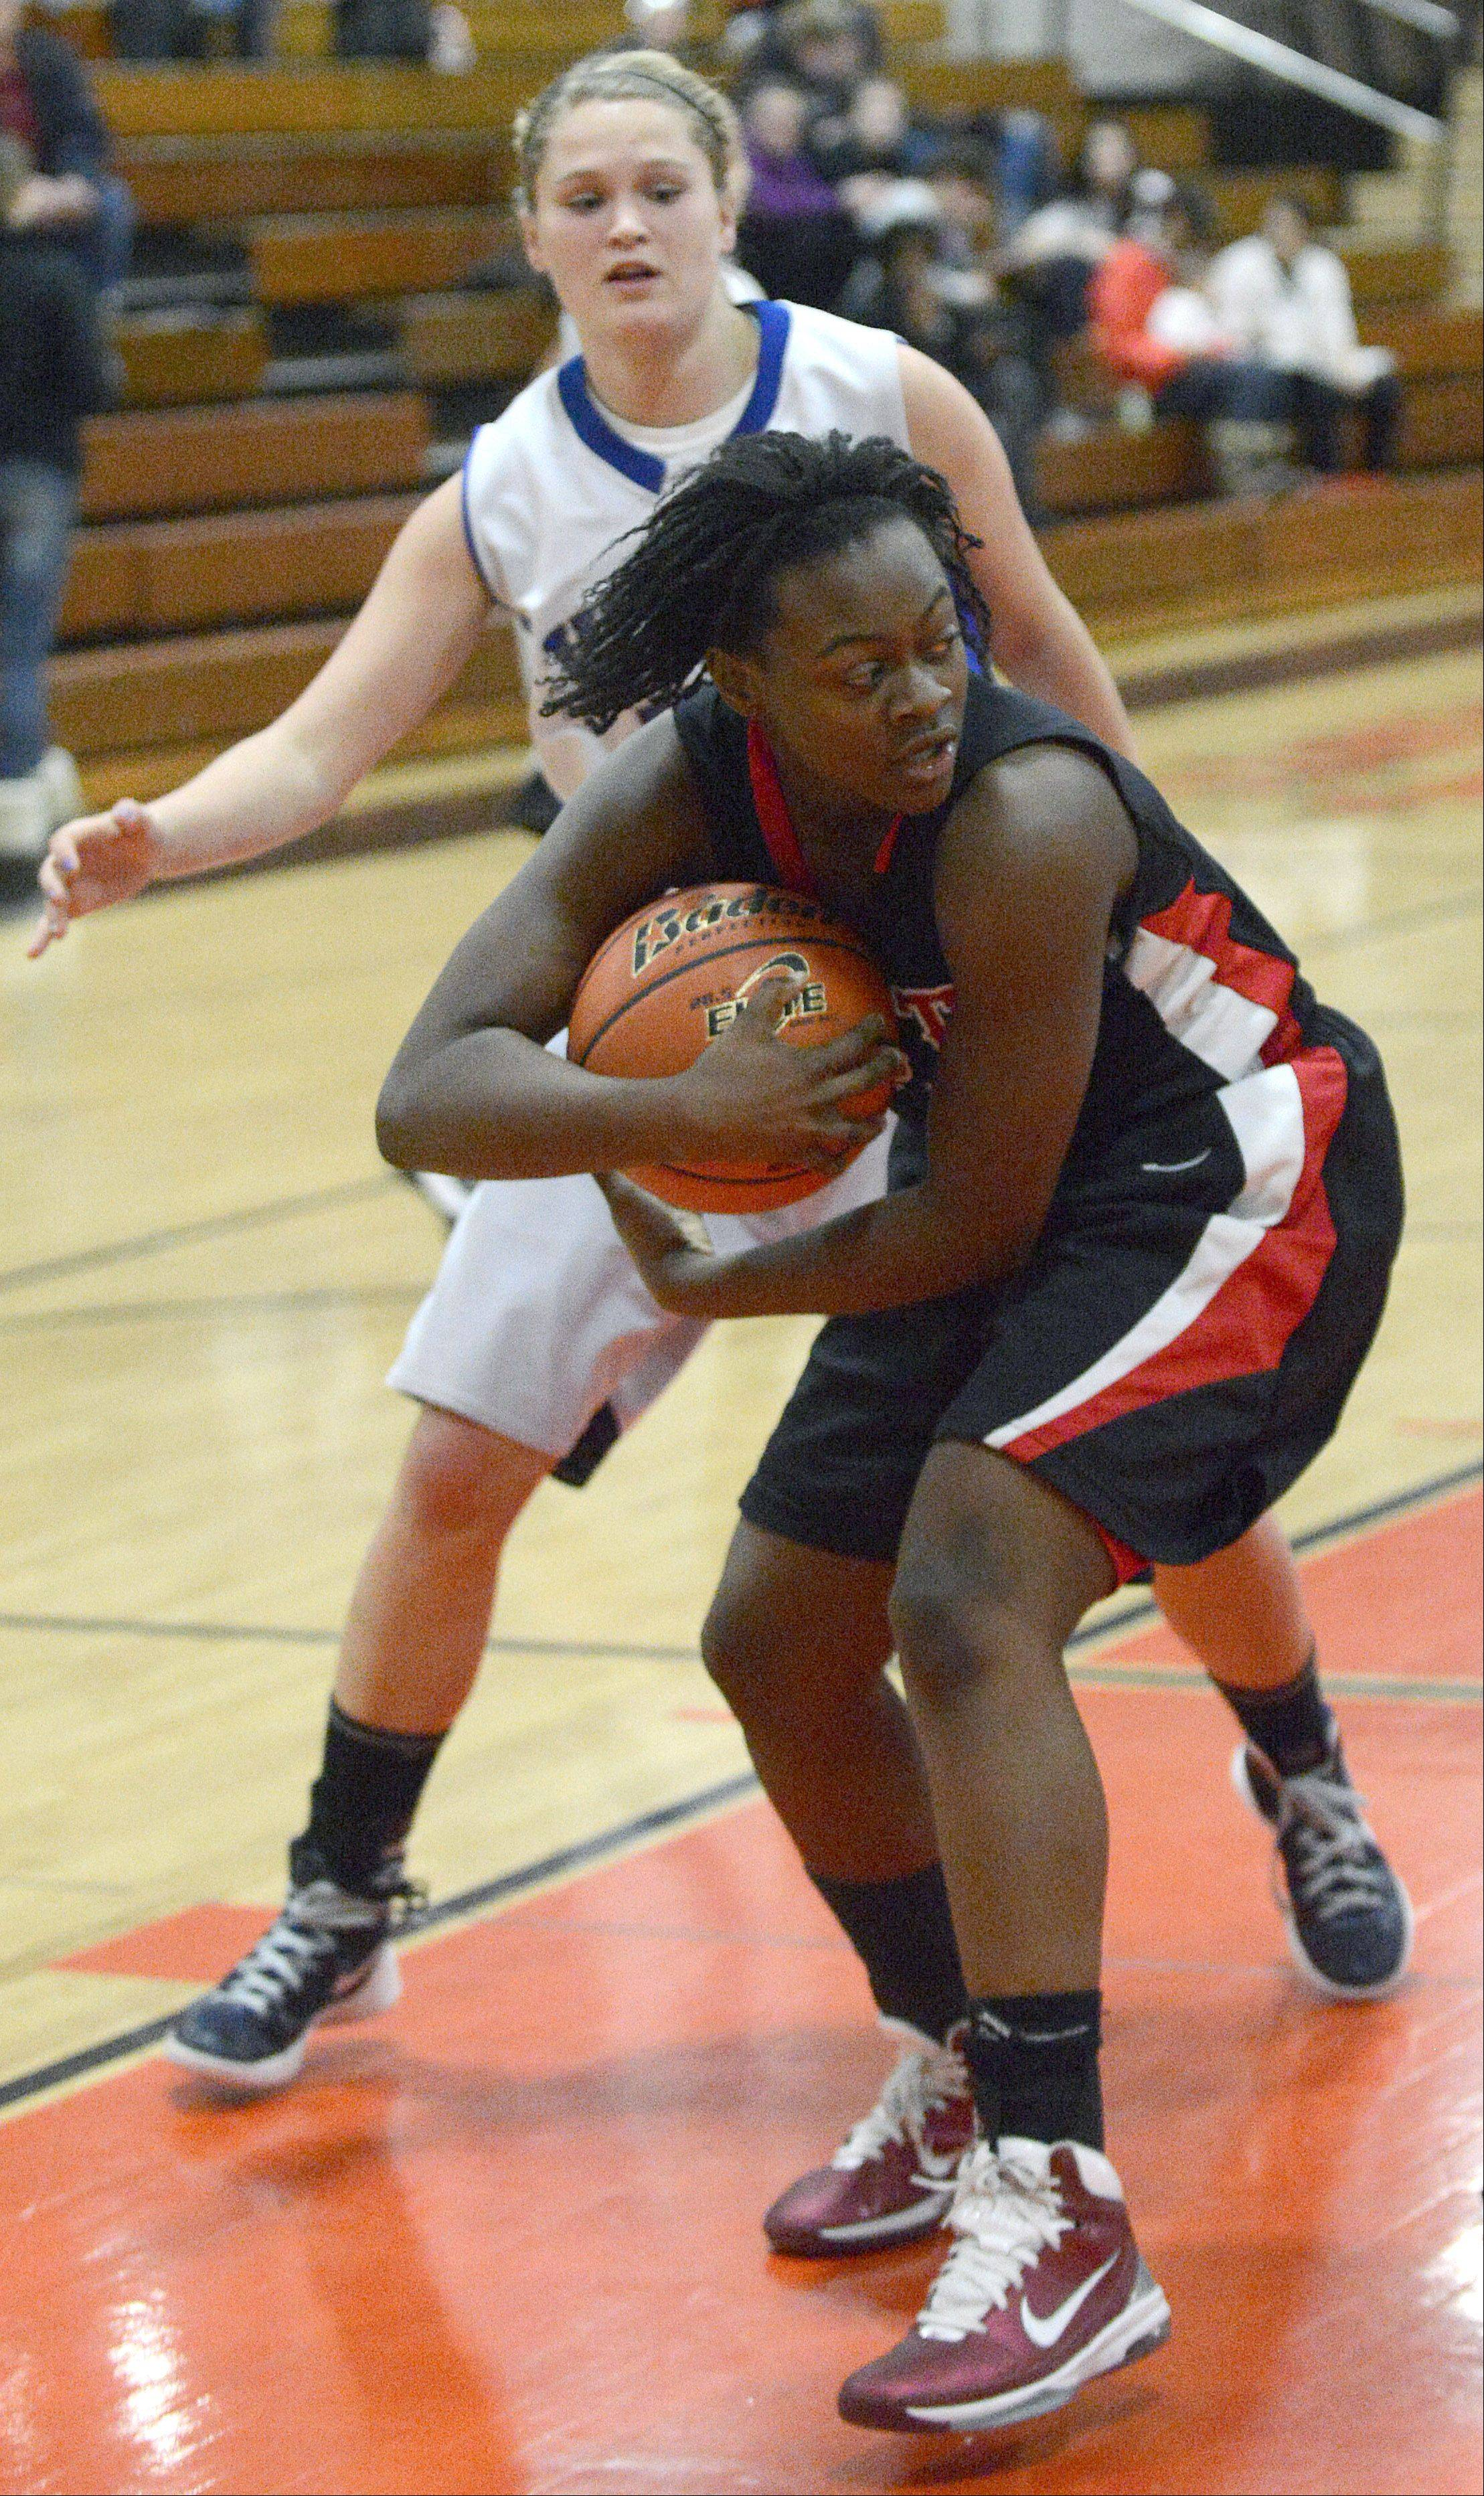 Glenbard East's Tajanae Key protects her rebound from Geneva's Janie McCloughan in the second quarter.